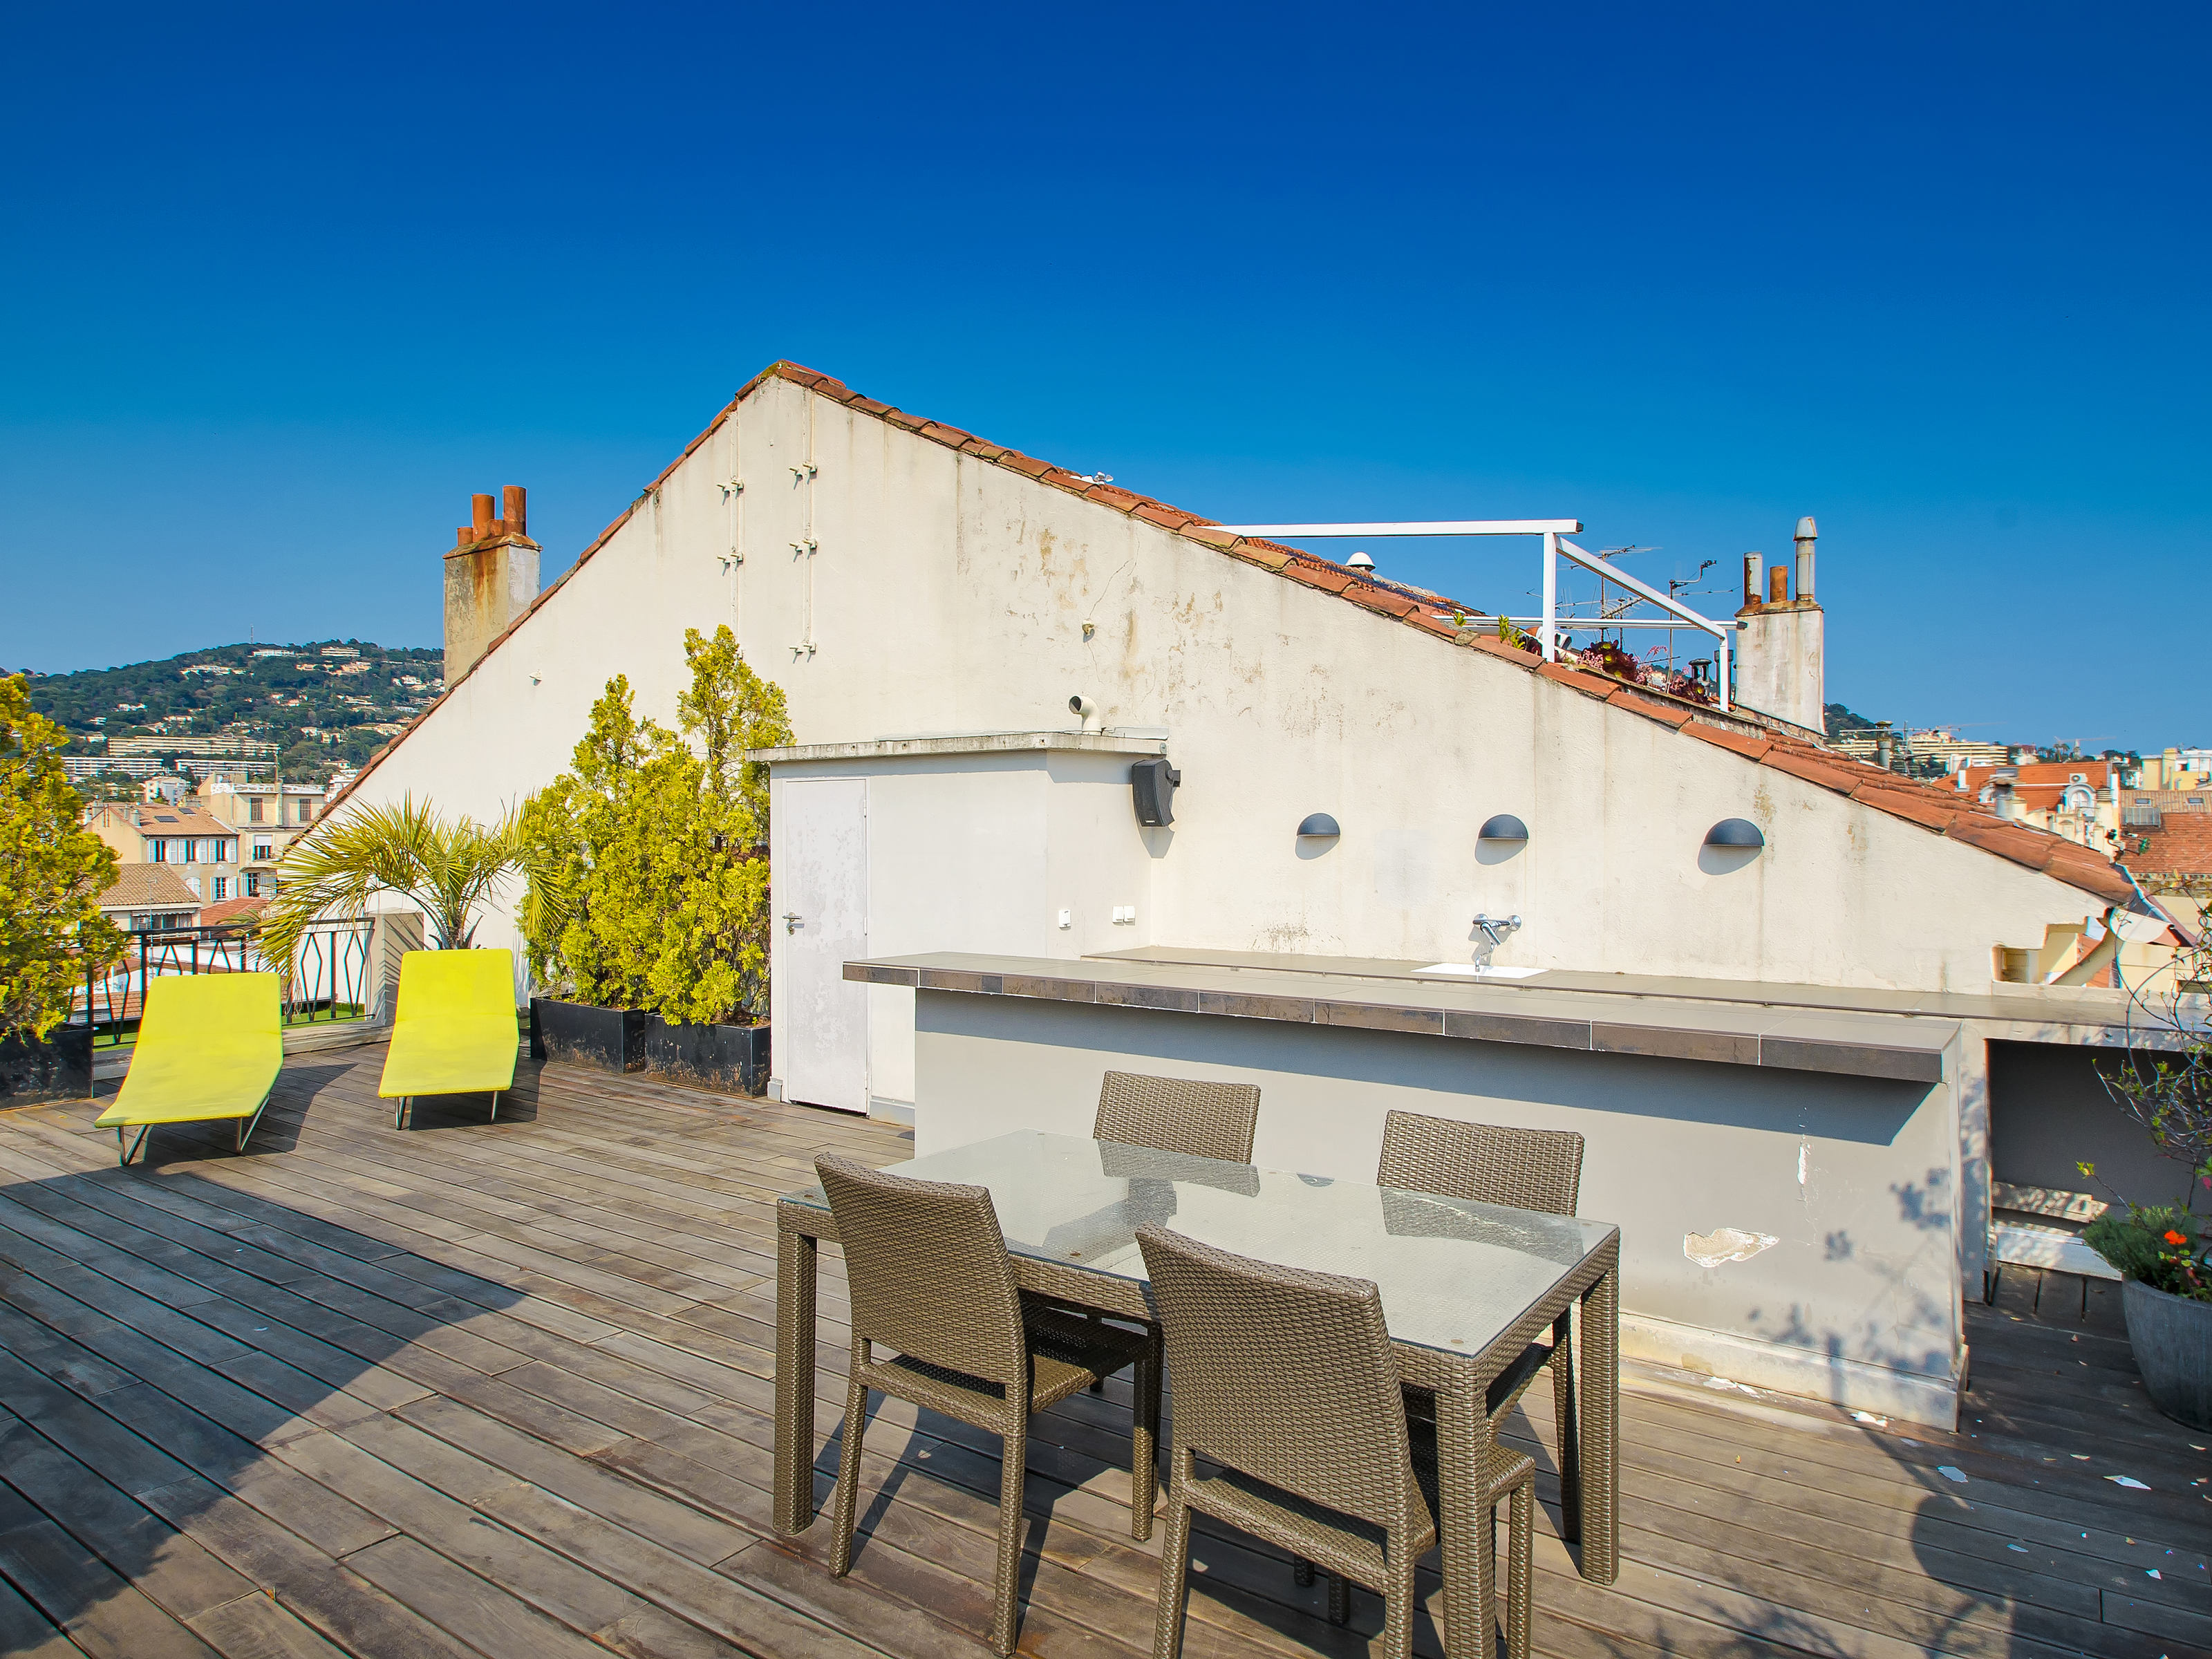 Condominium for Sale at Nice penthouse in the heart of Cannes Cannes, Provence-Alpes-Cote D'Azur 06400 France